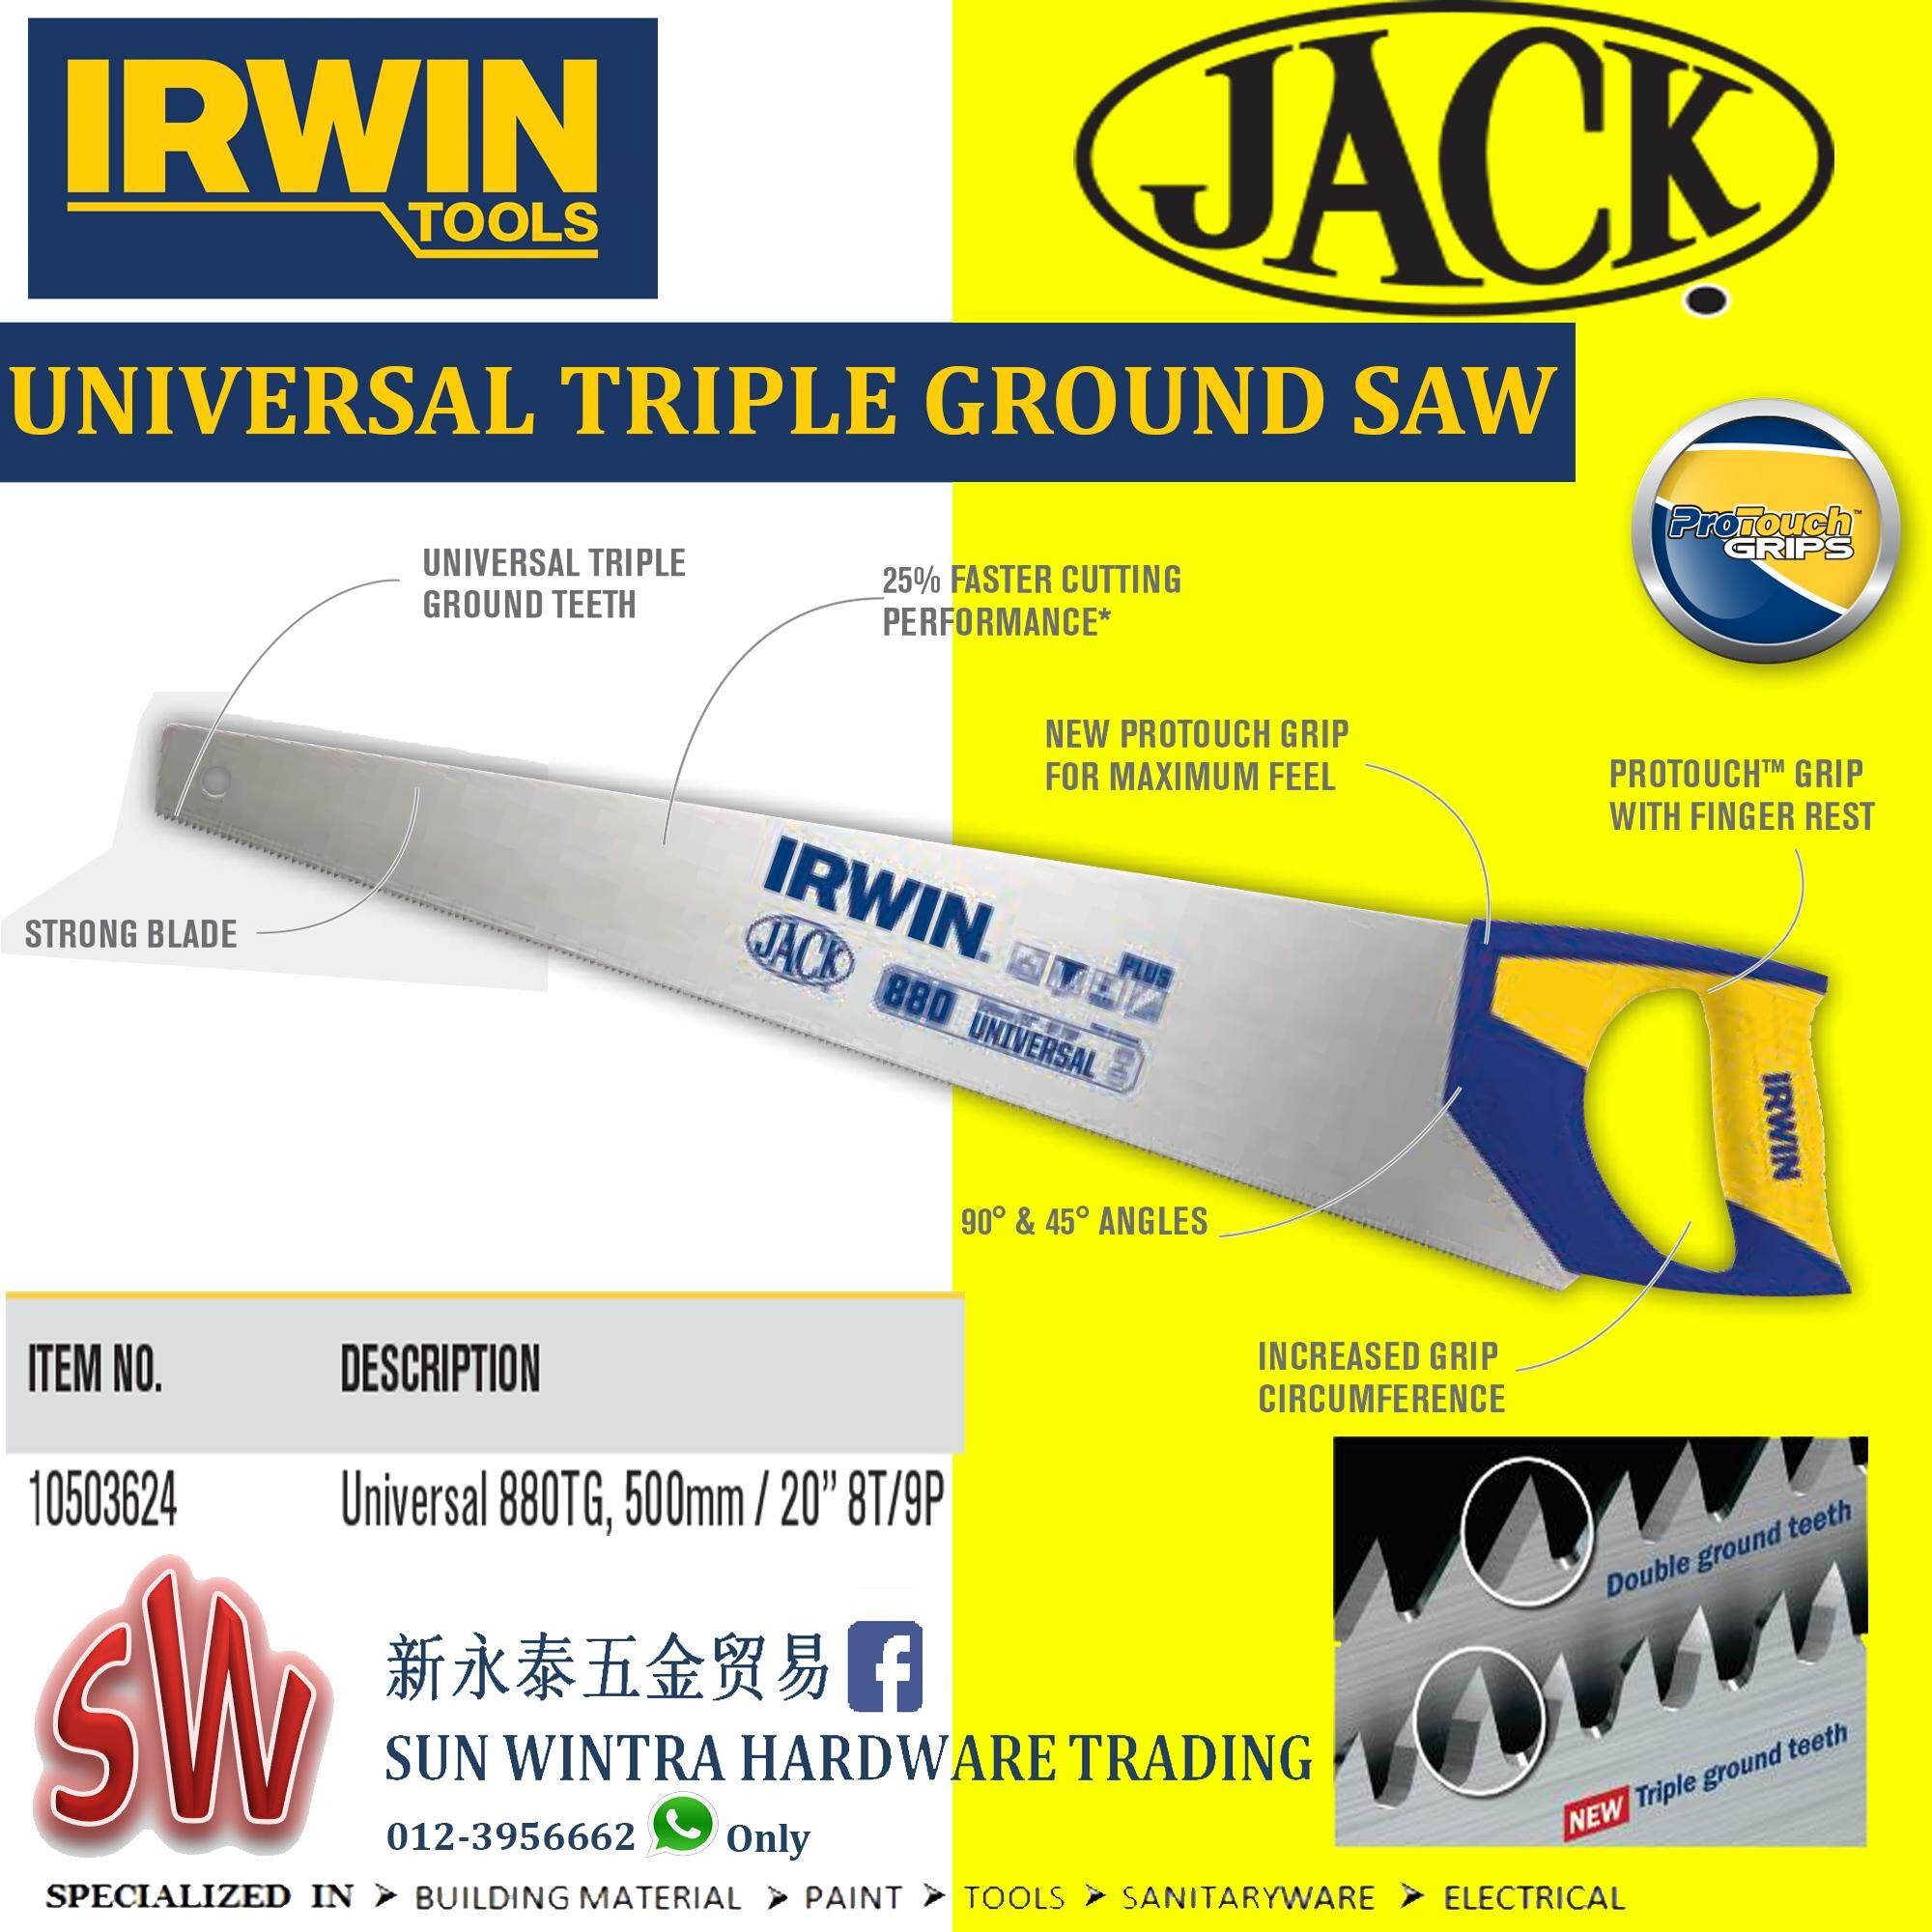 Irwin Plus880 20/500mm Universal Triple Ground Saw By Sun Wintra.